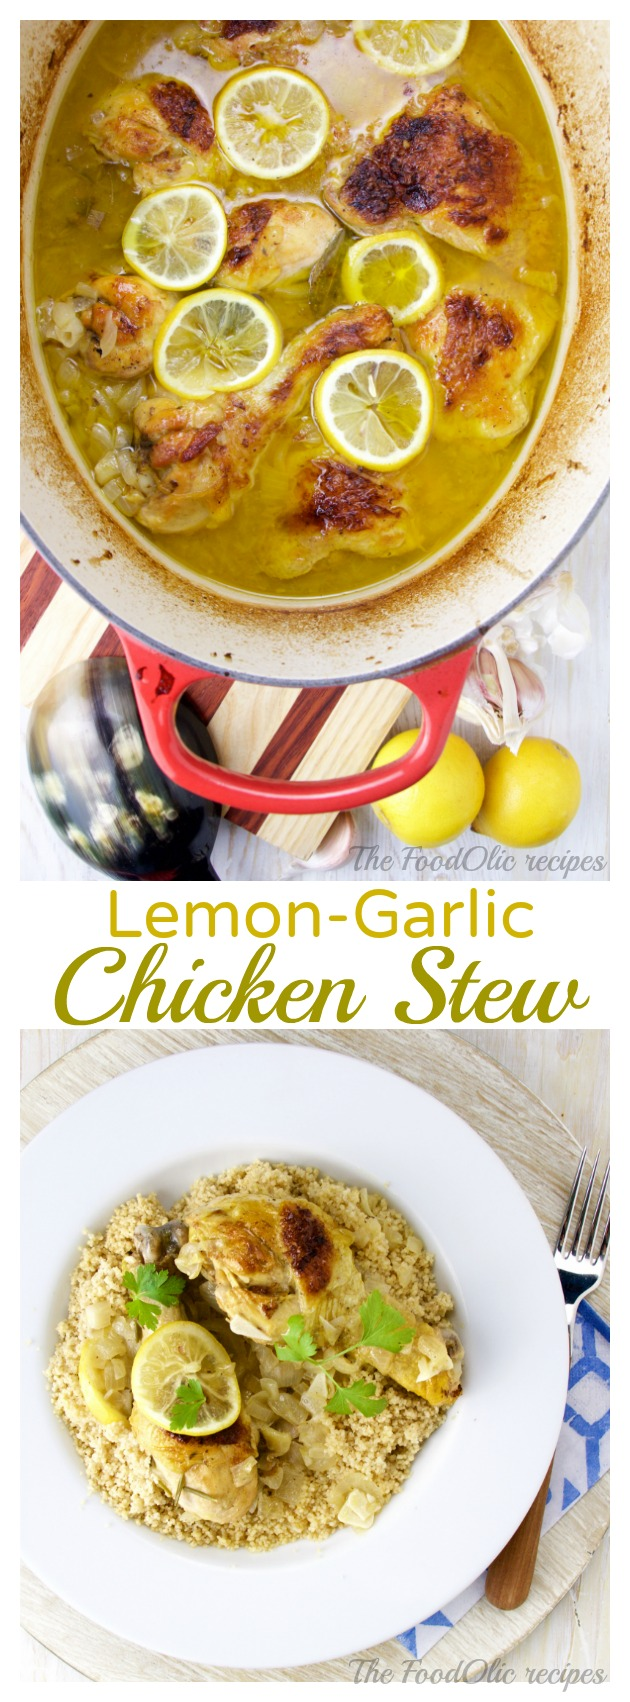 Lemon and Garlic Chicken Stew is a tangy and delicate dish served on a kamut couscous to soak all that tangy lemon-garlic sauce. Comfort food with a certain zing!